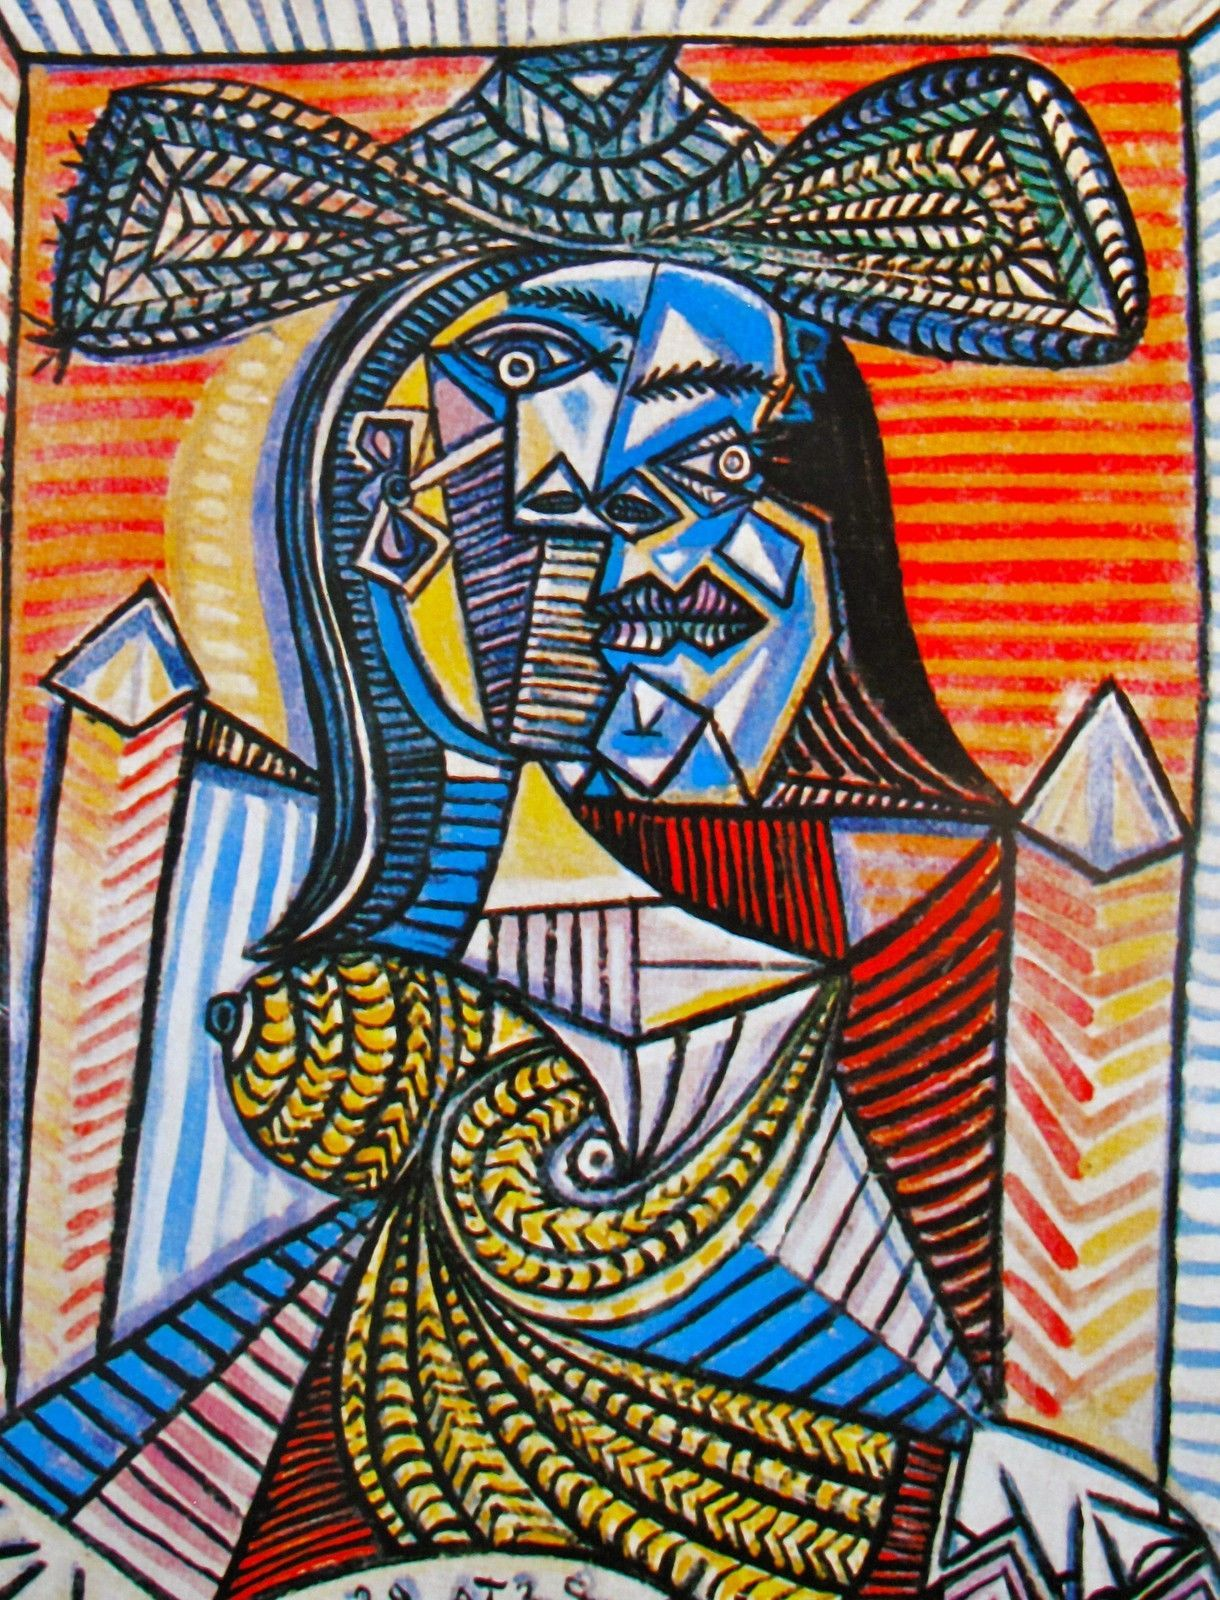 Picasso art style